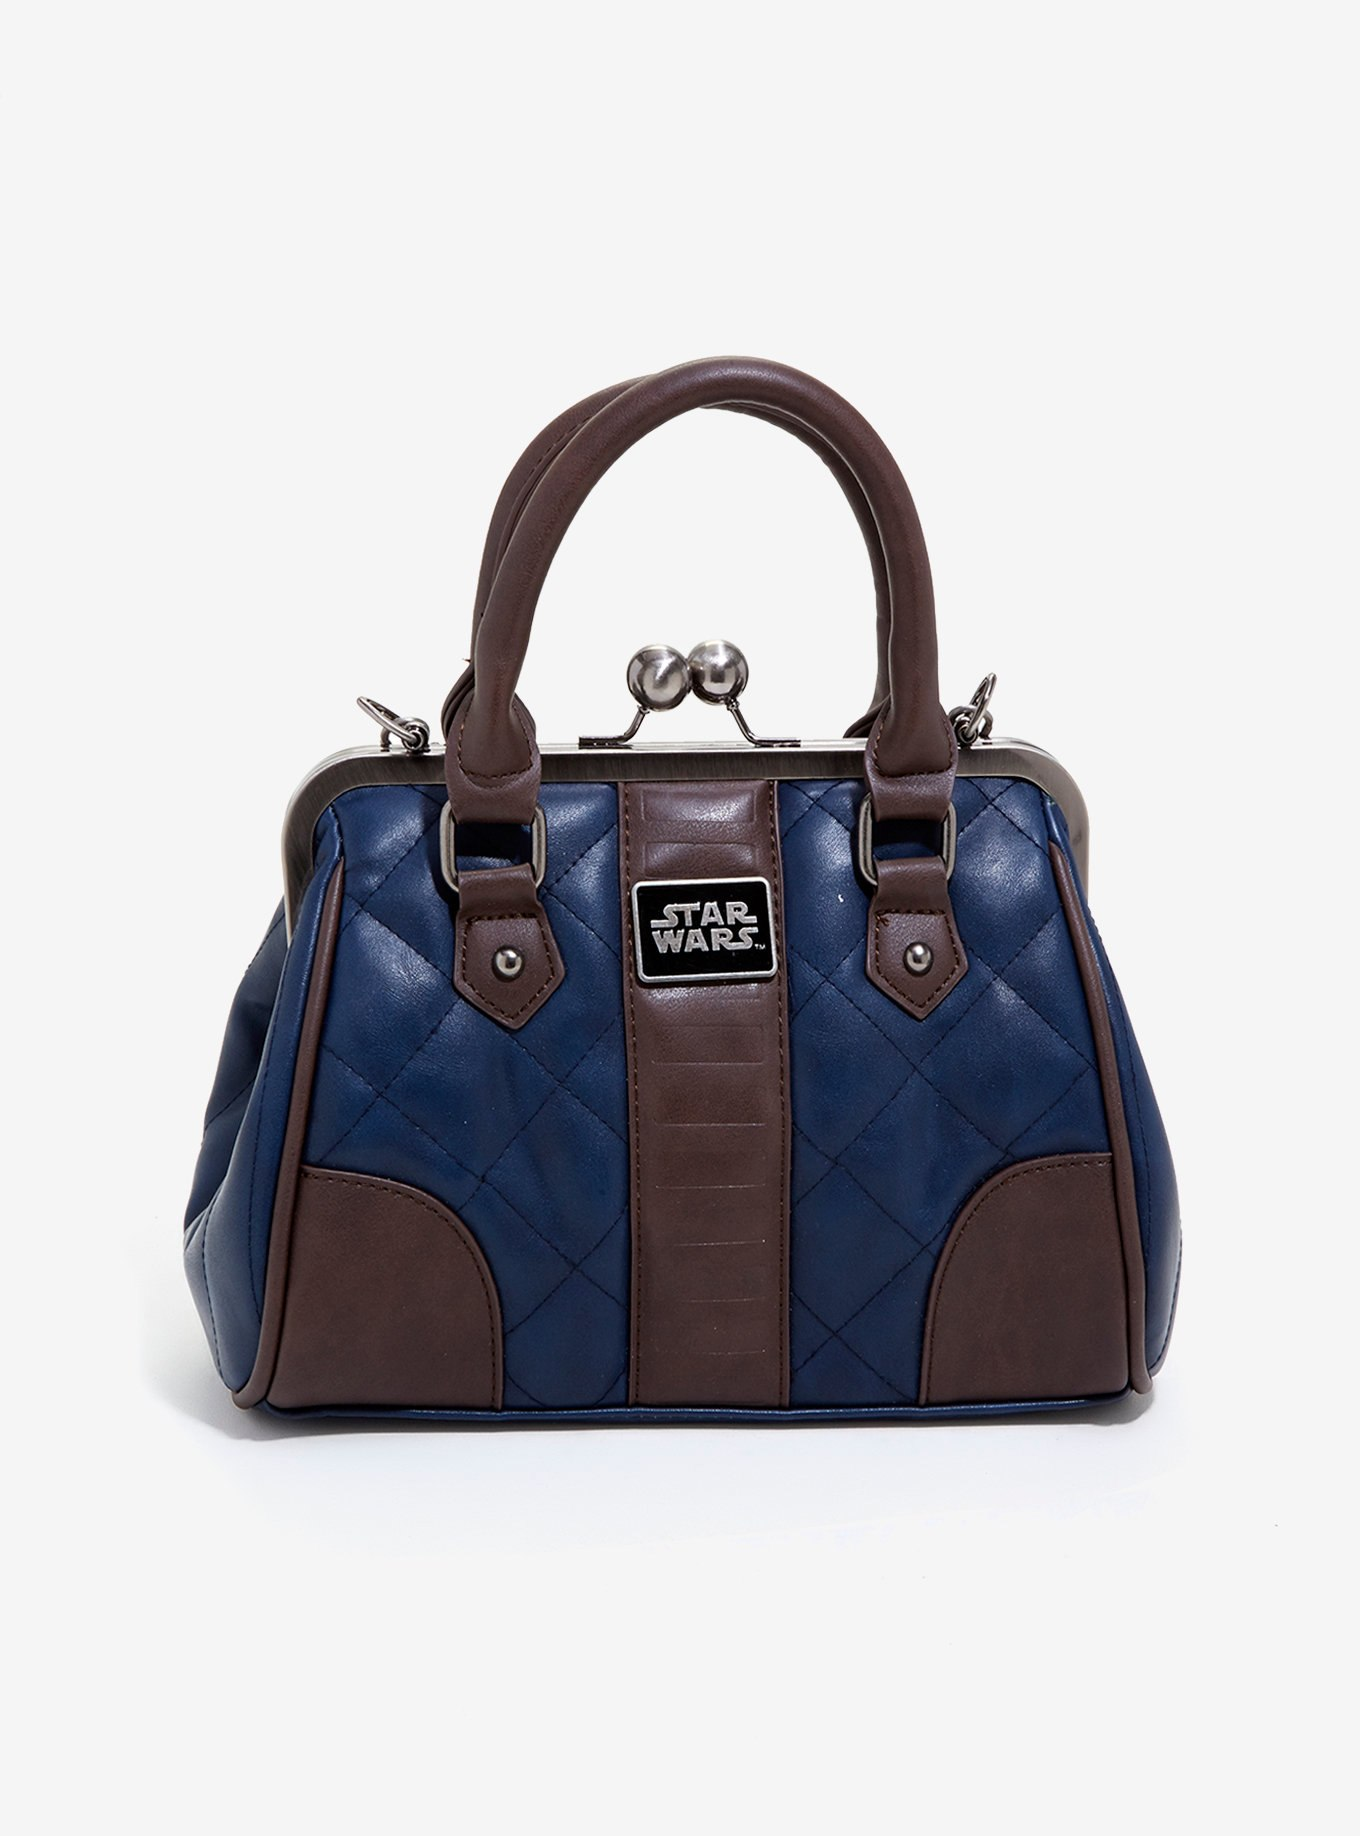 Bioworld x Star Wars Han Solo Hoth Kisslock Satchel Handbag at Hot Topic